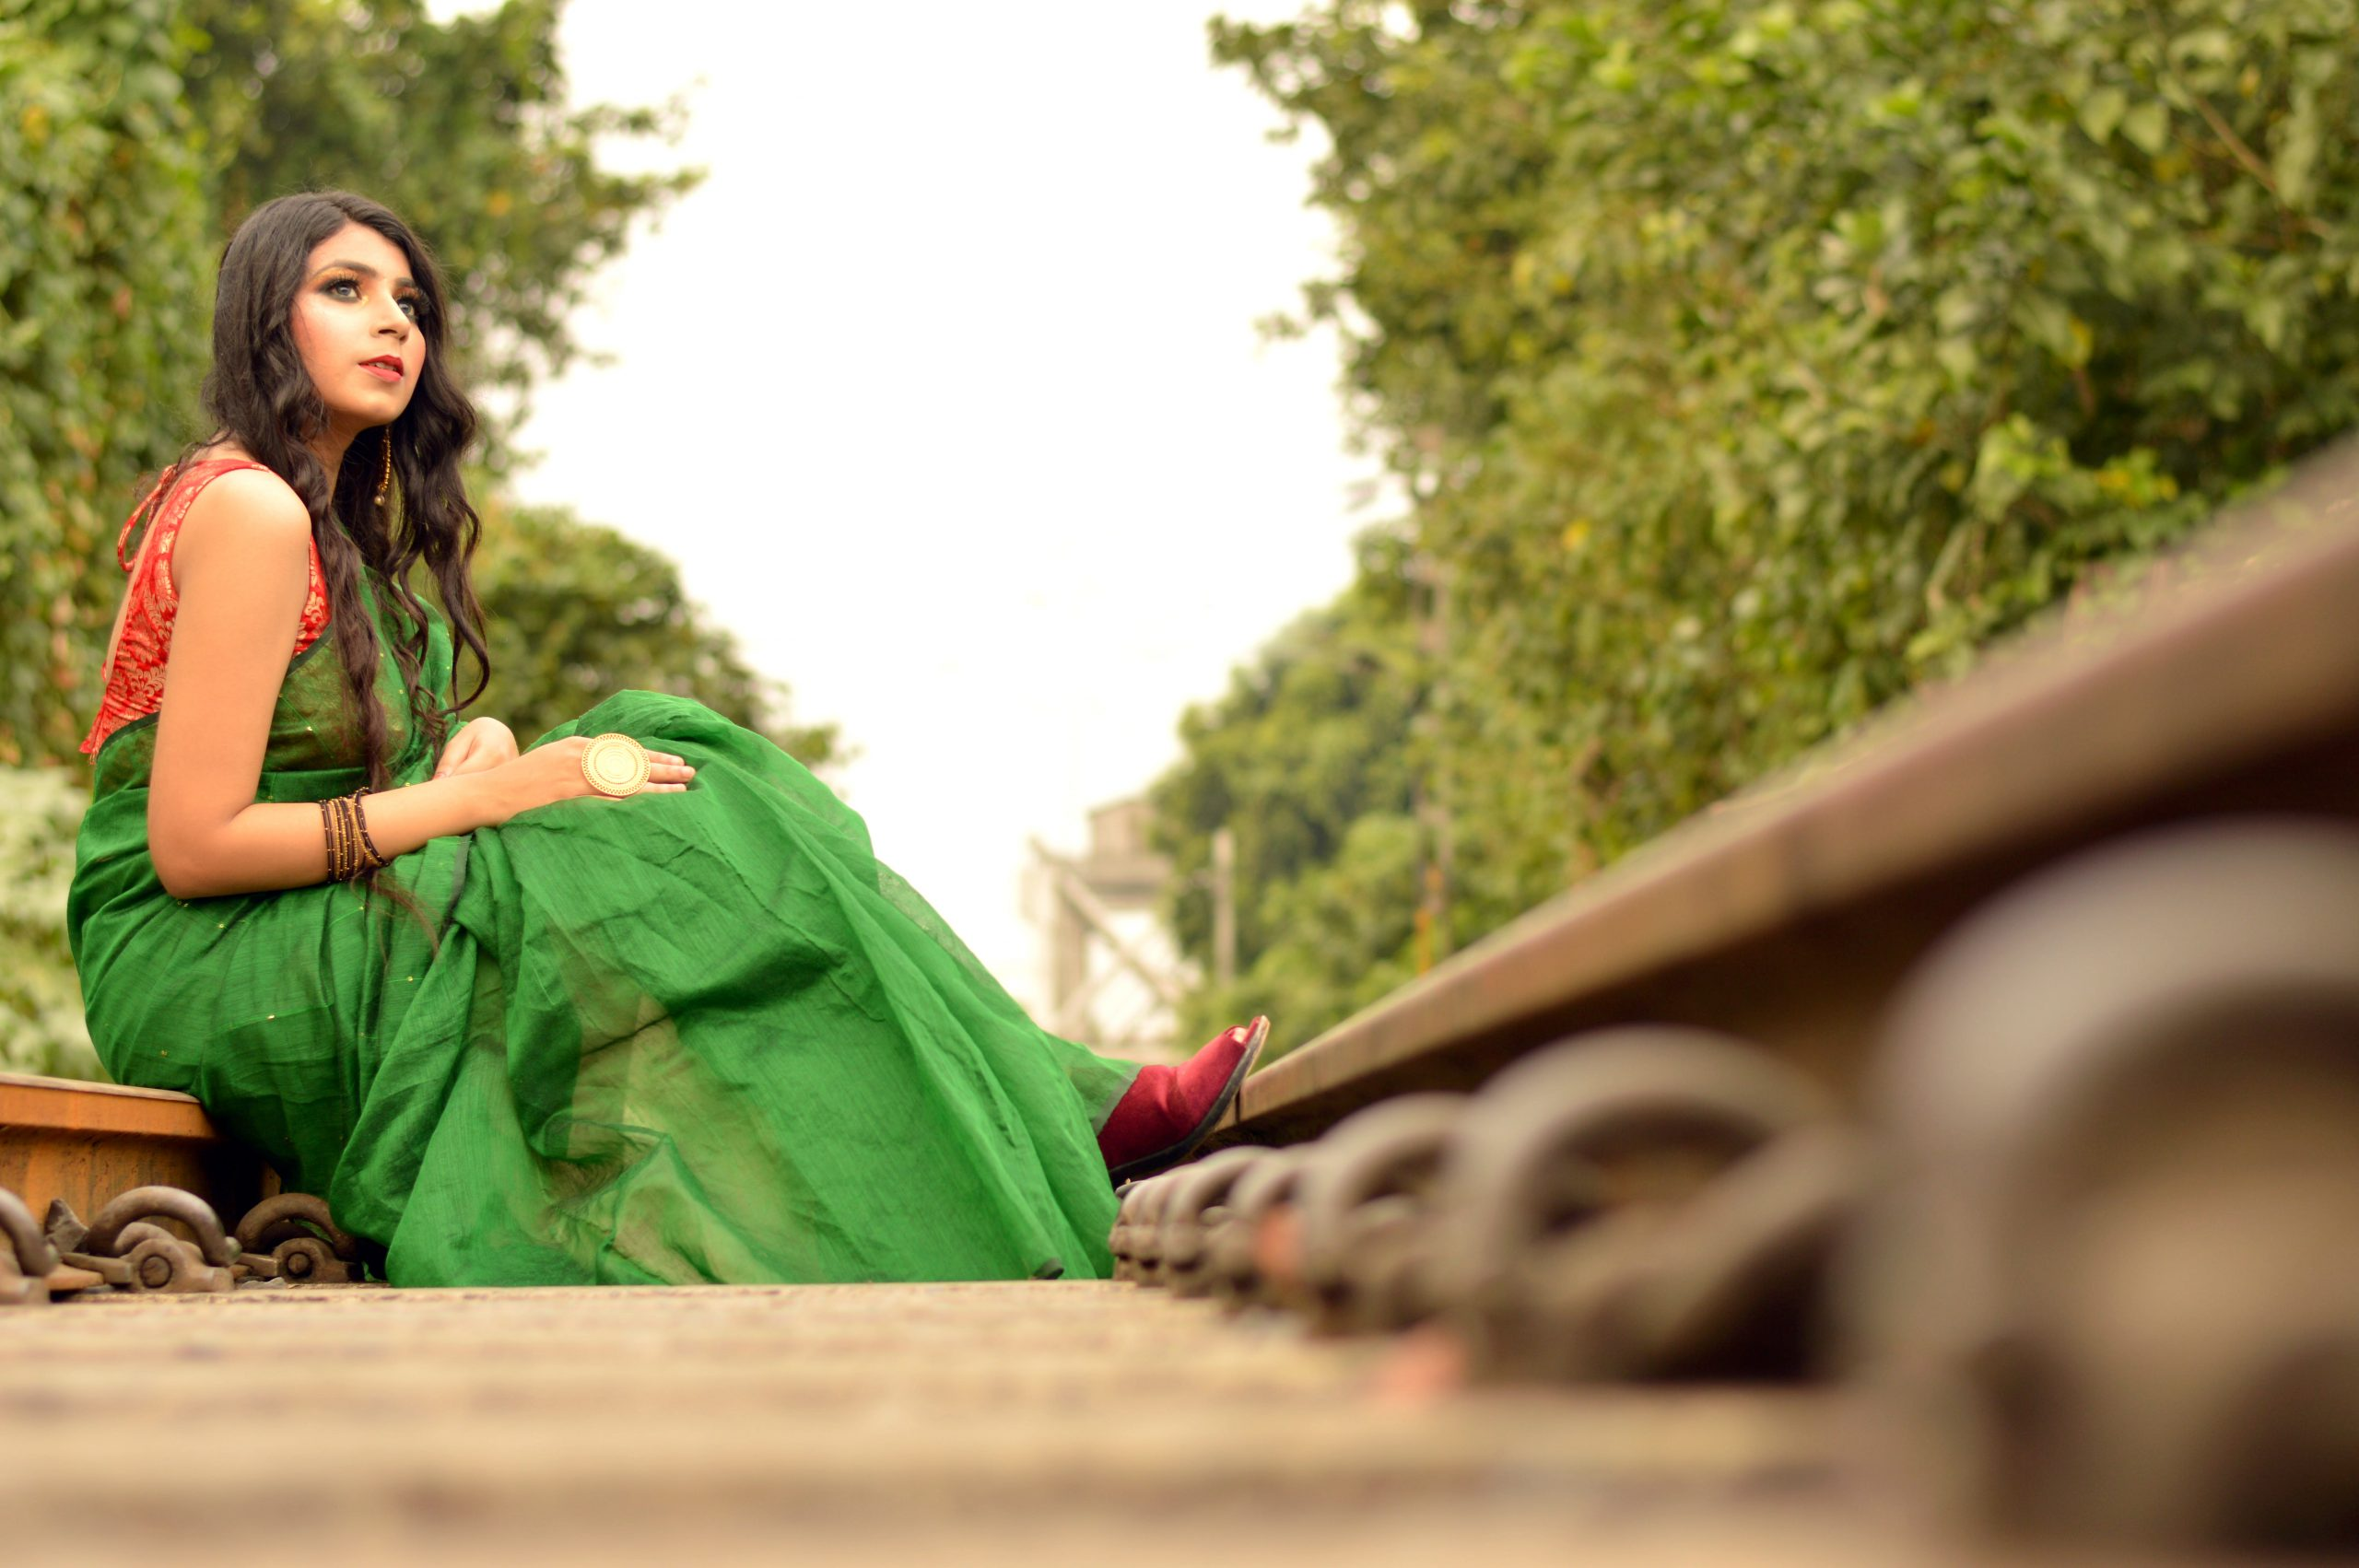 A girl sitting at railway track